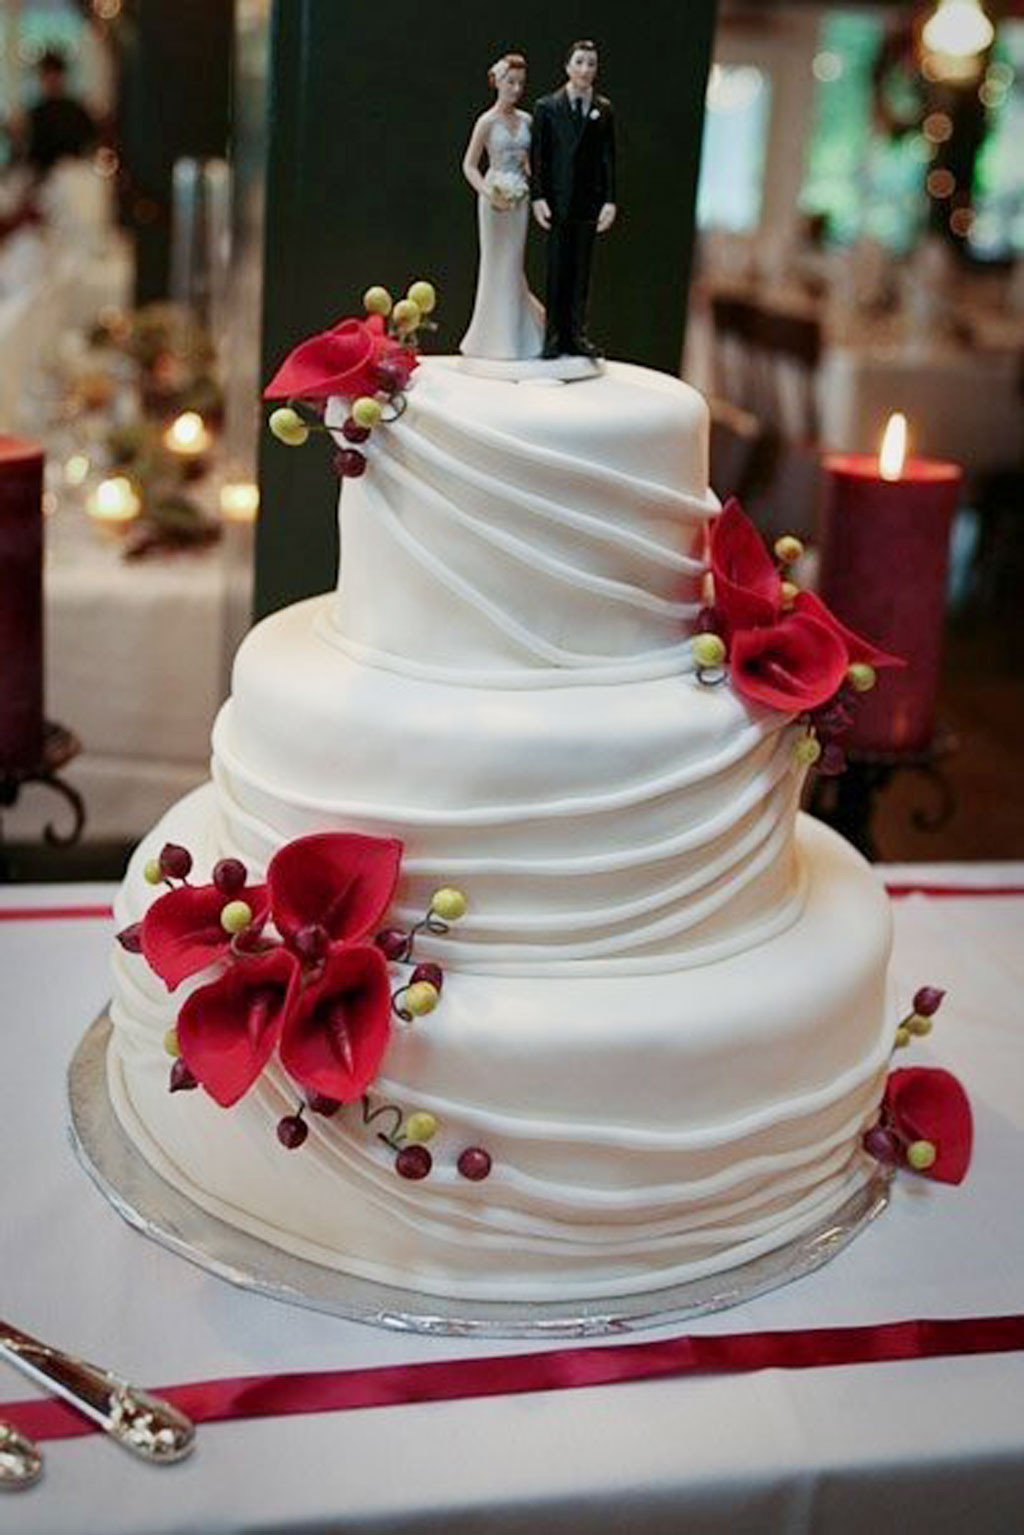 Small Wedding Cakes Designs  Red Calla Lily Wedding Cake Design 2 Wedding Cake Cake